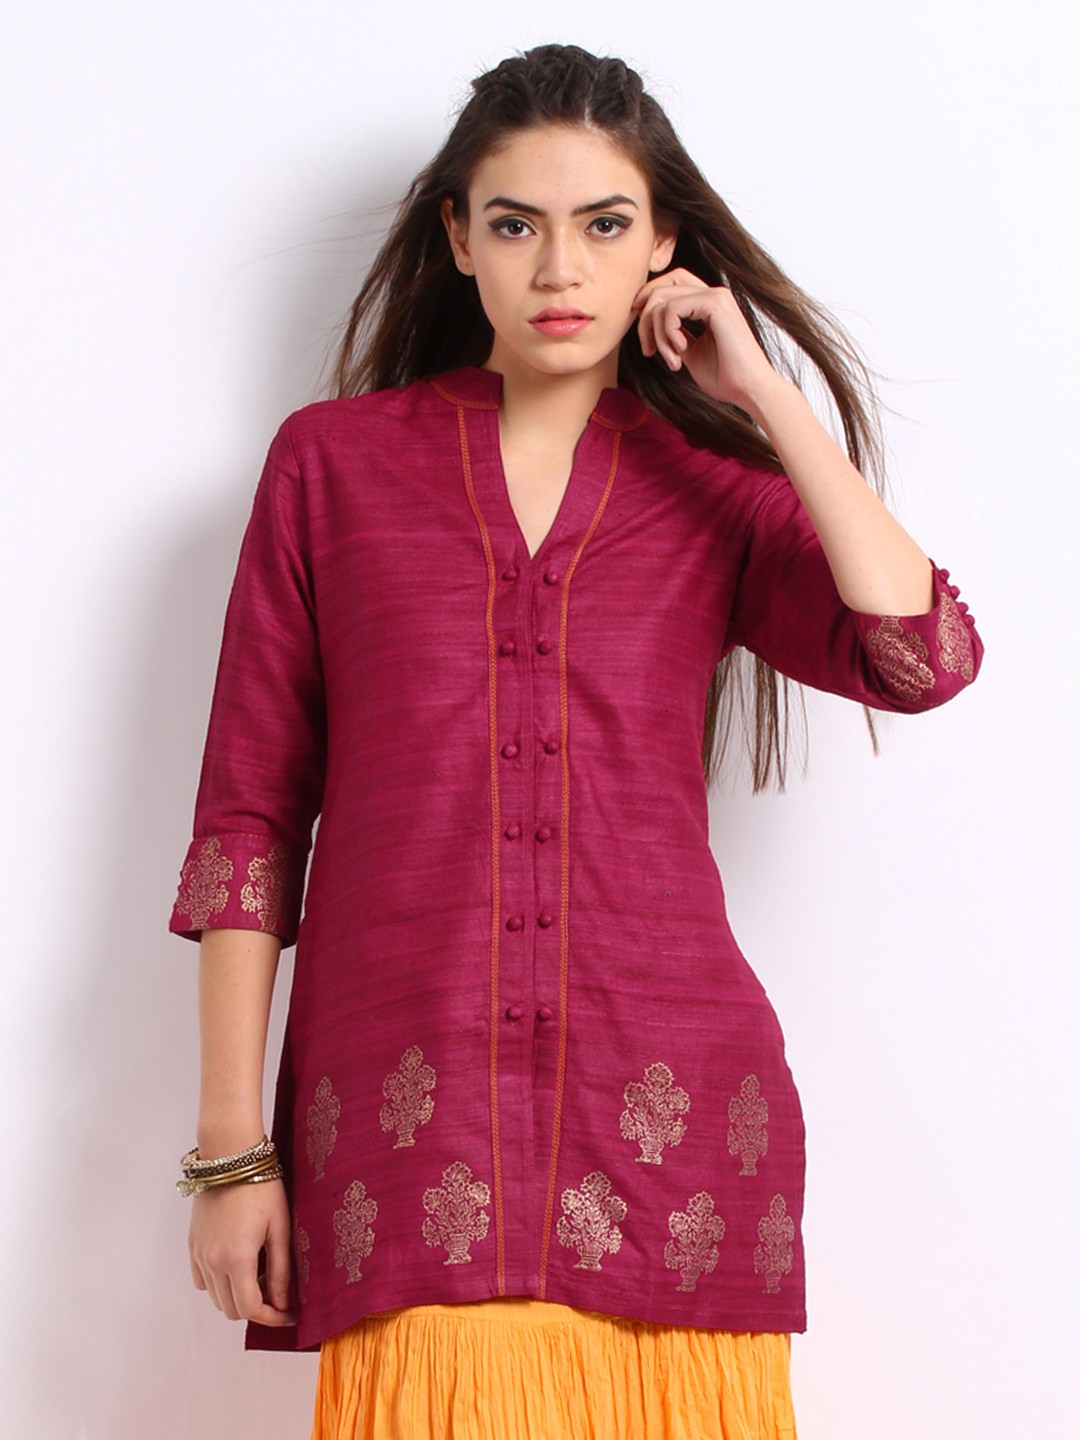 Anouk-Rustic-Women-Tunics_ Ladies Tops and Shirts By Best Brands